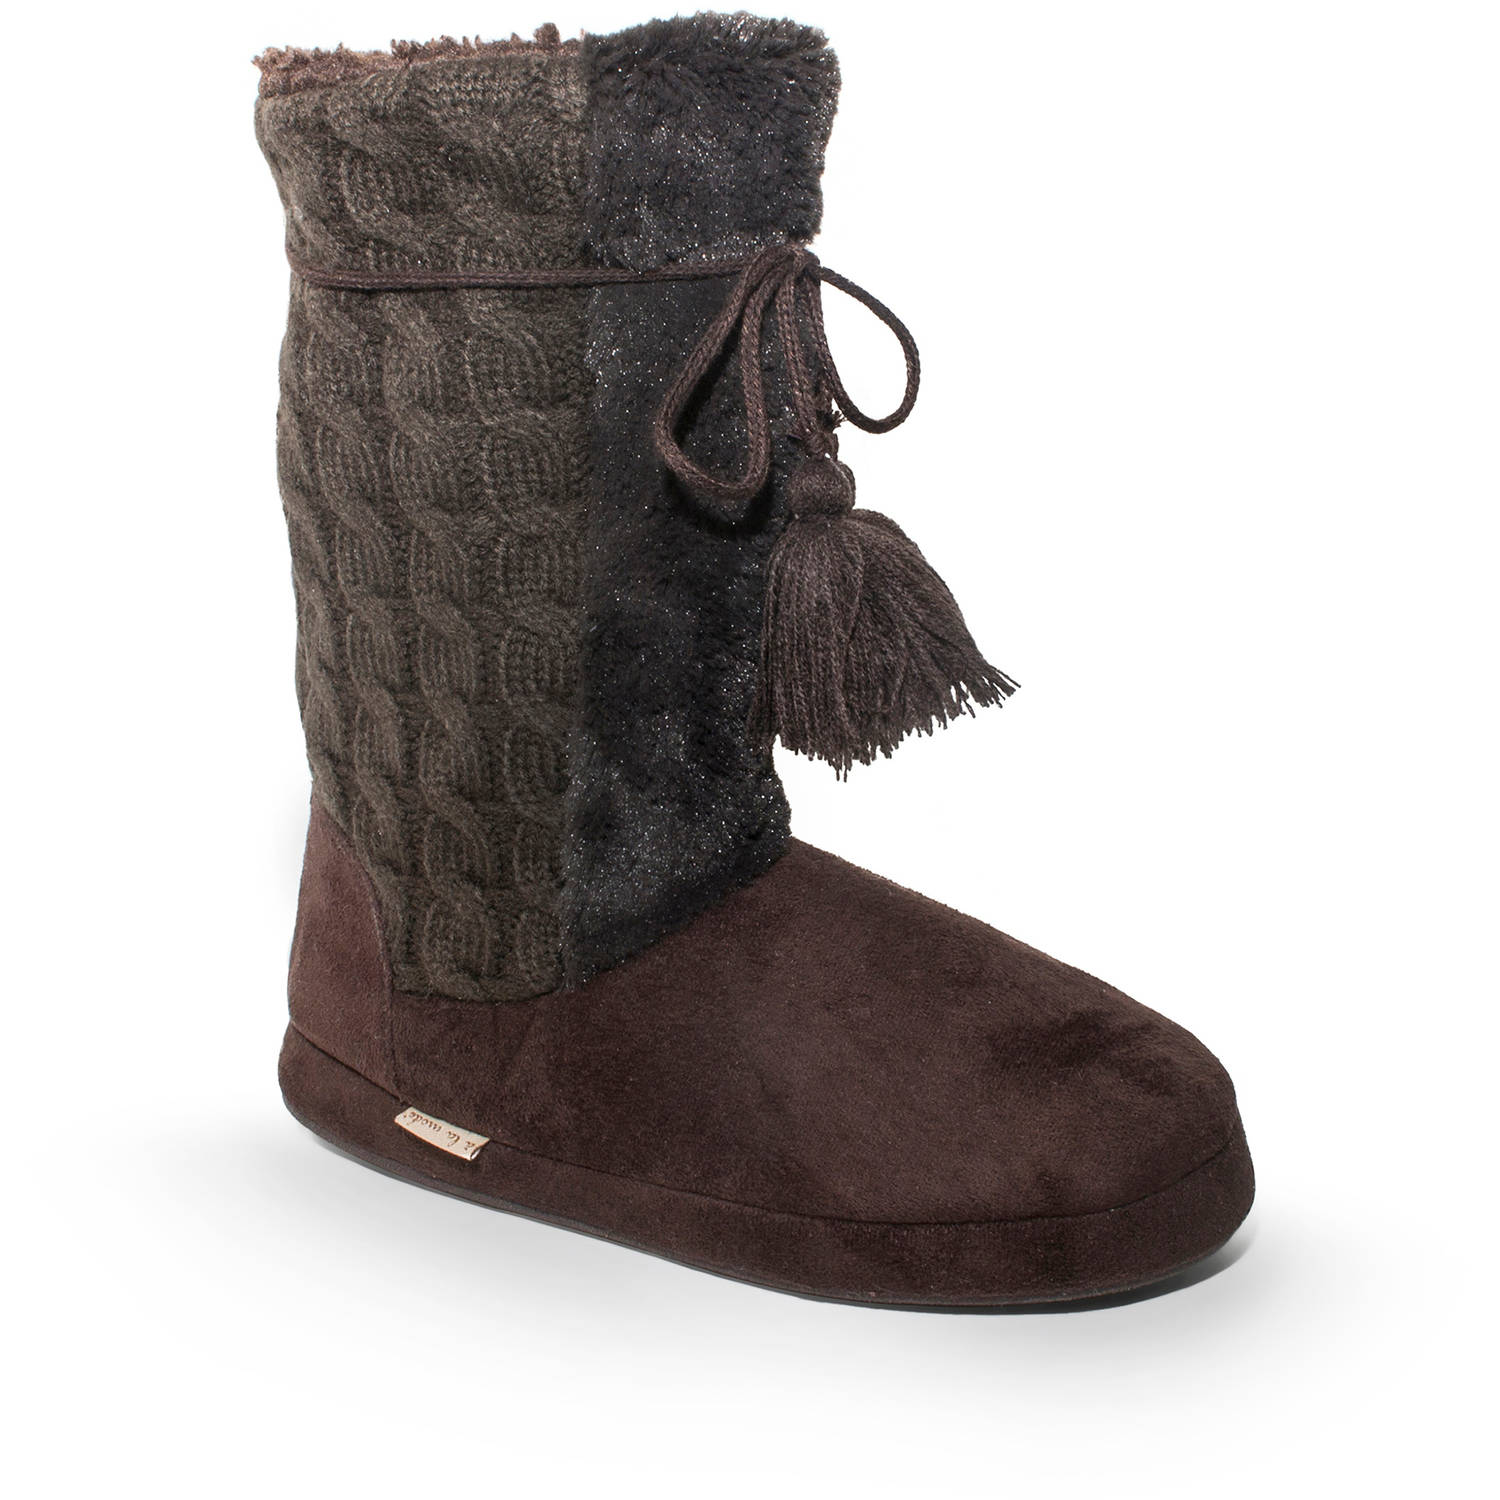 MUK LUKS Women's Cable Jewel Slipper